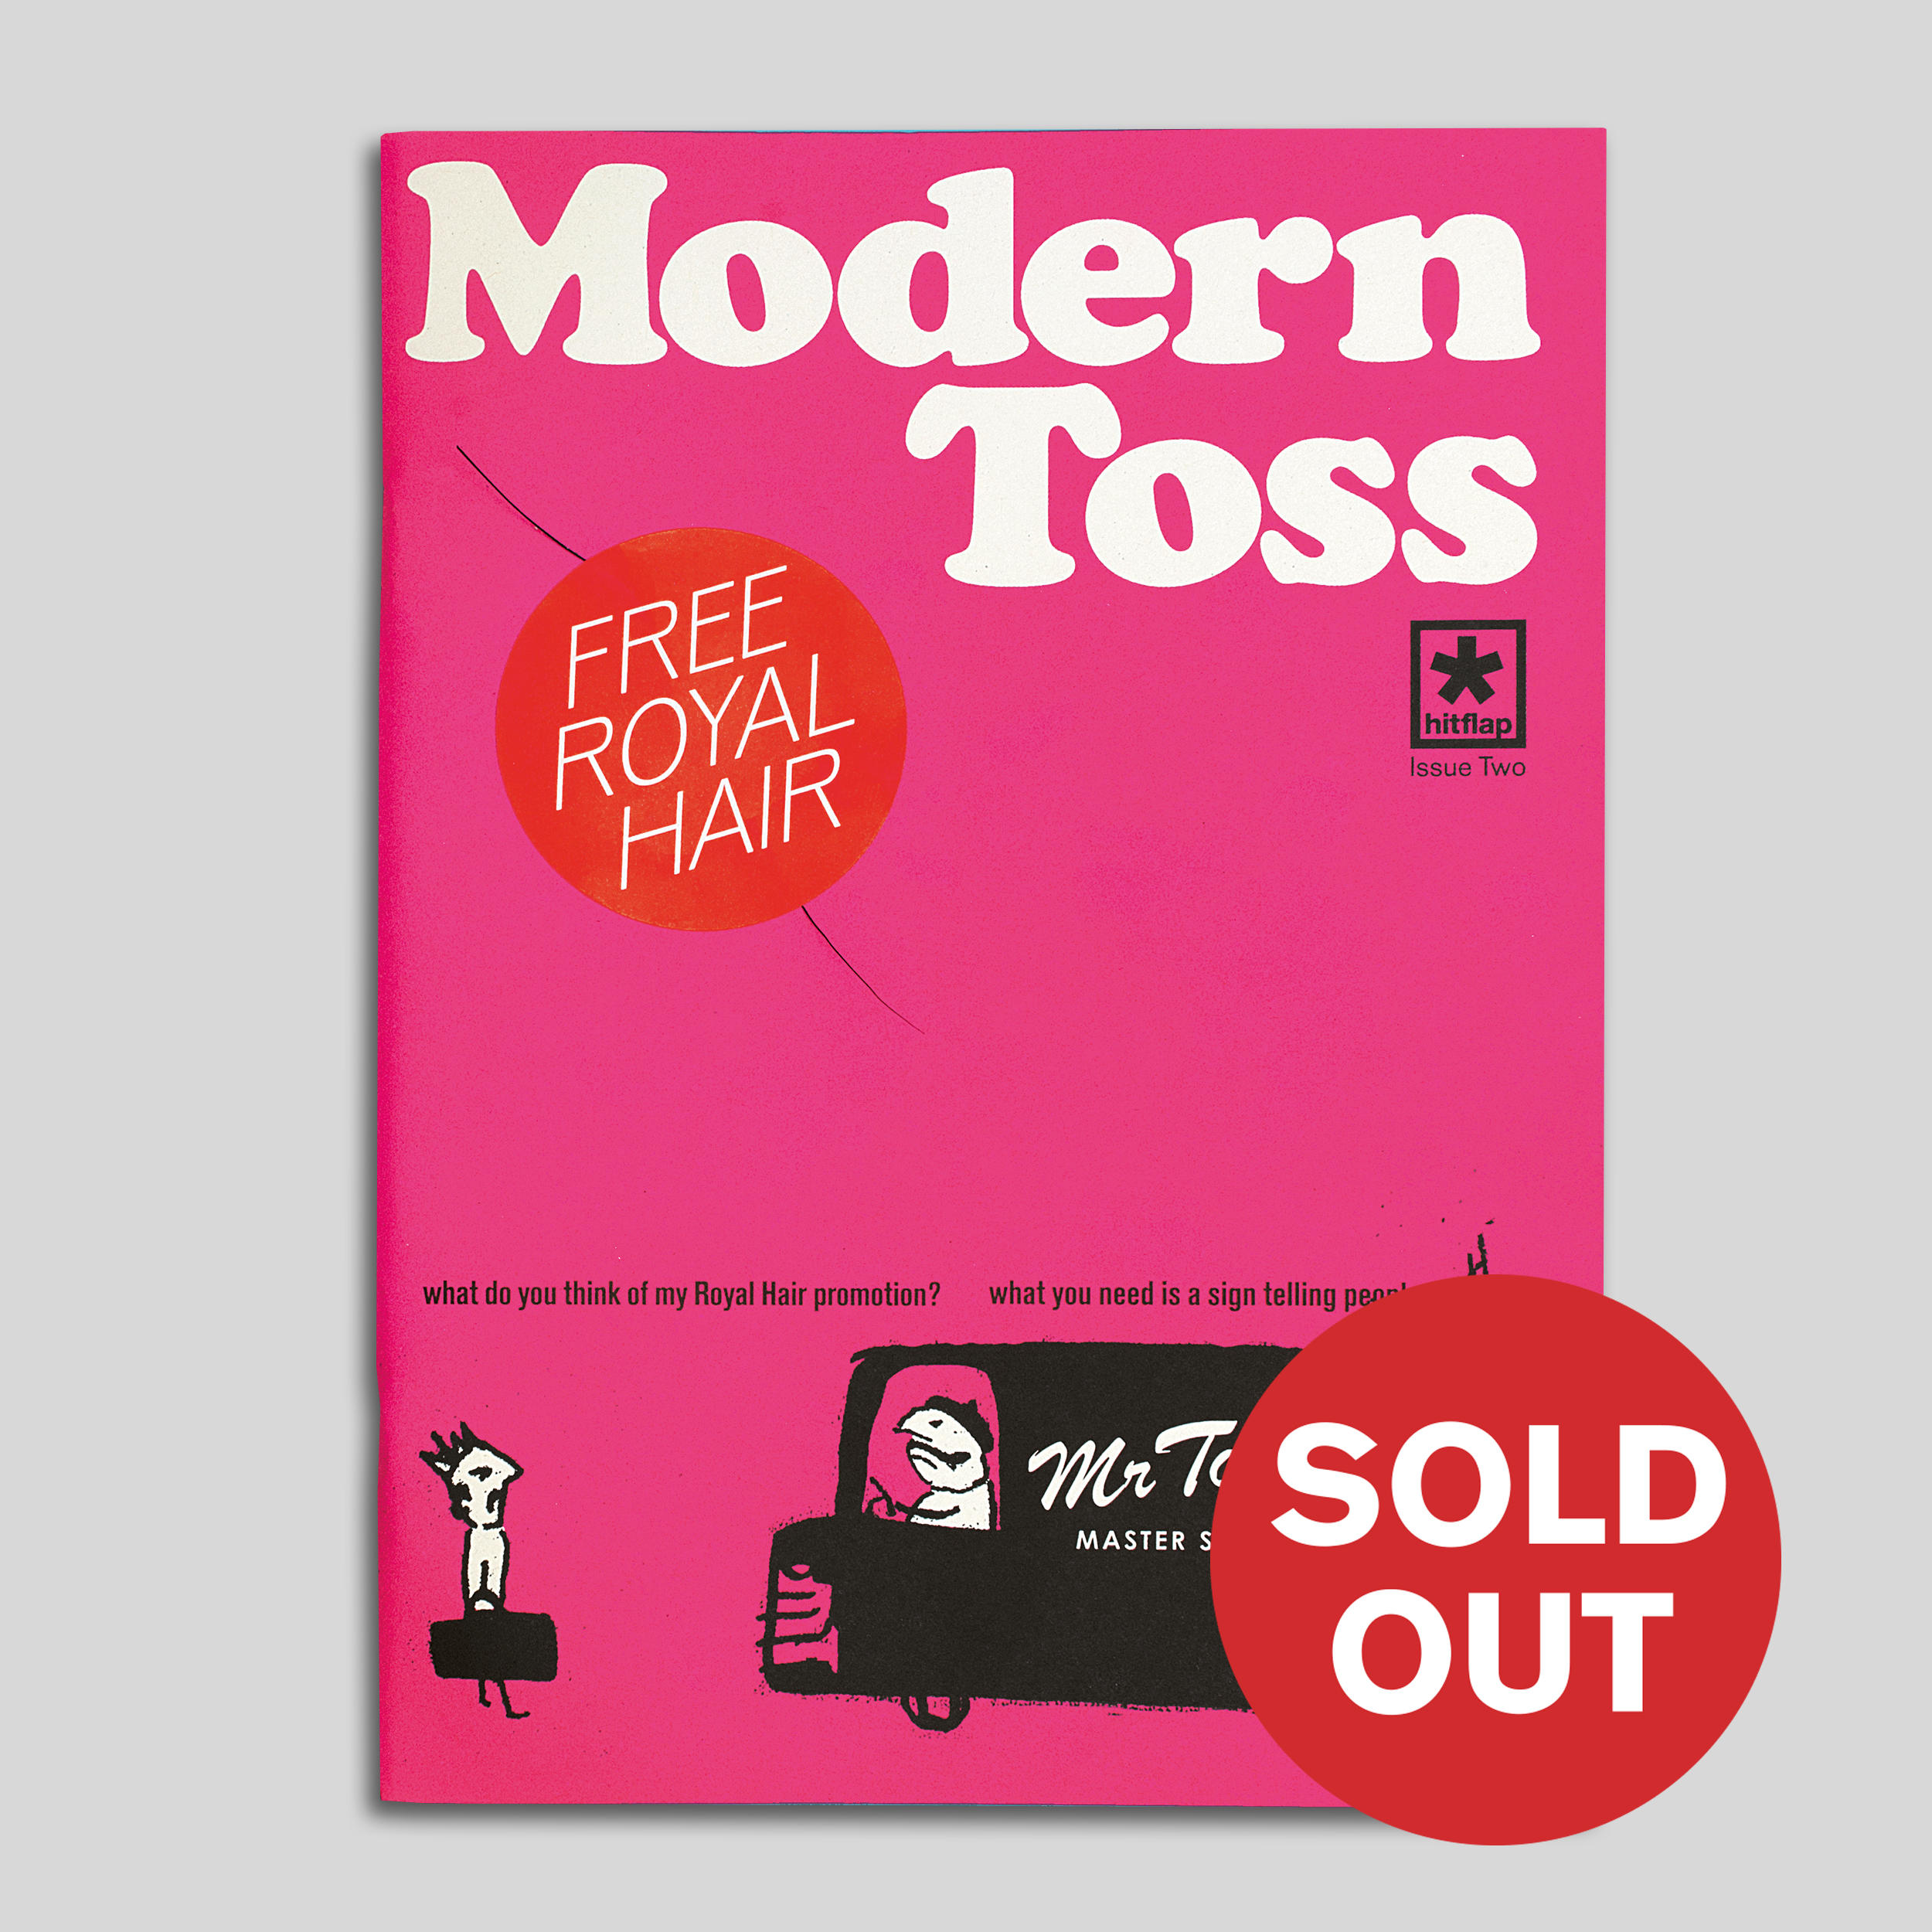 Modern Toss Issue 2